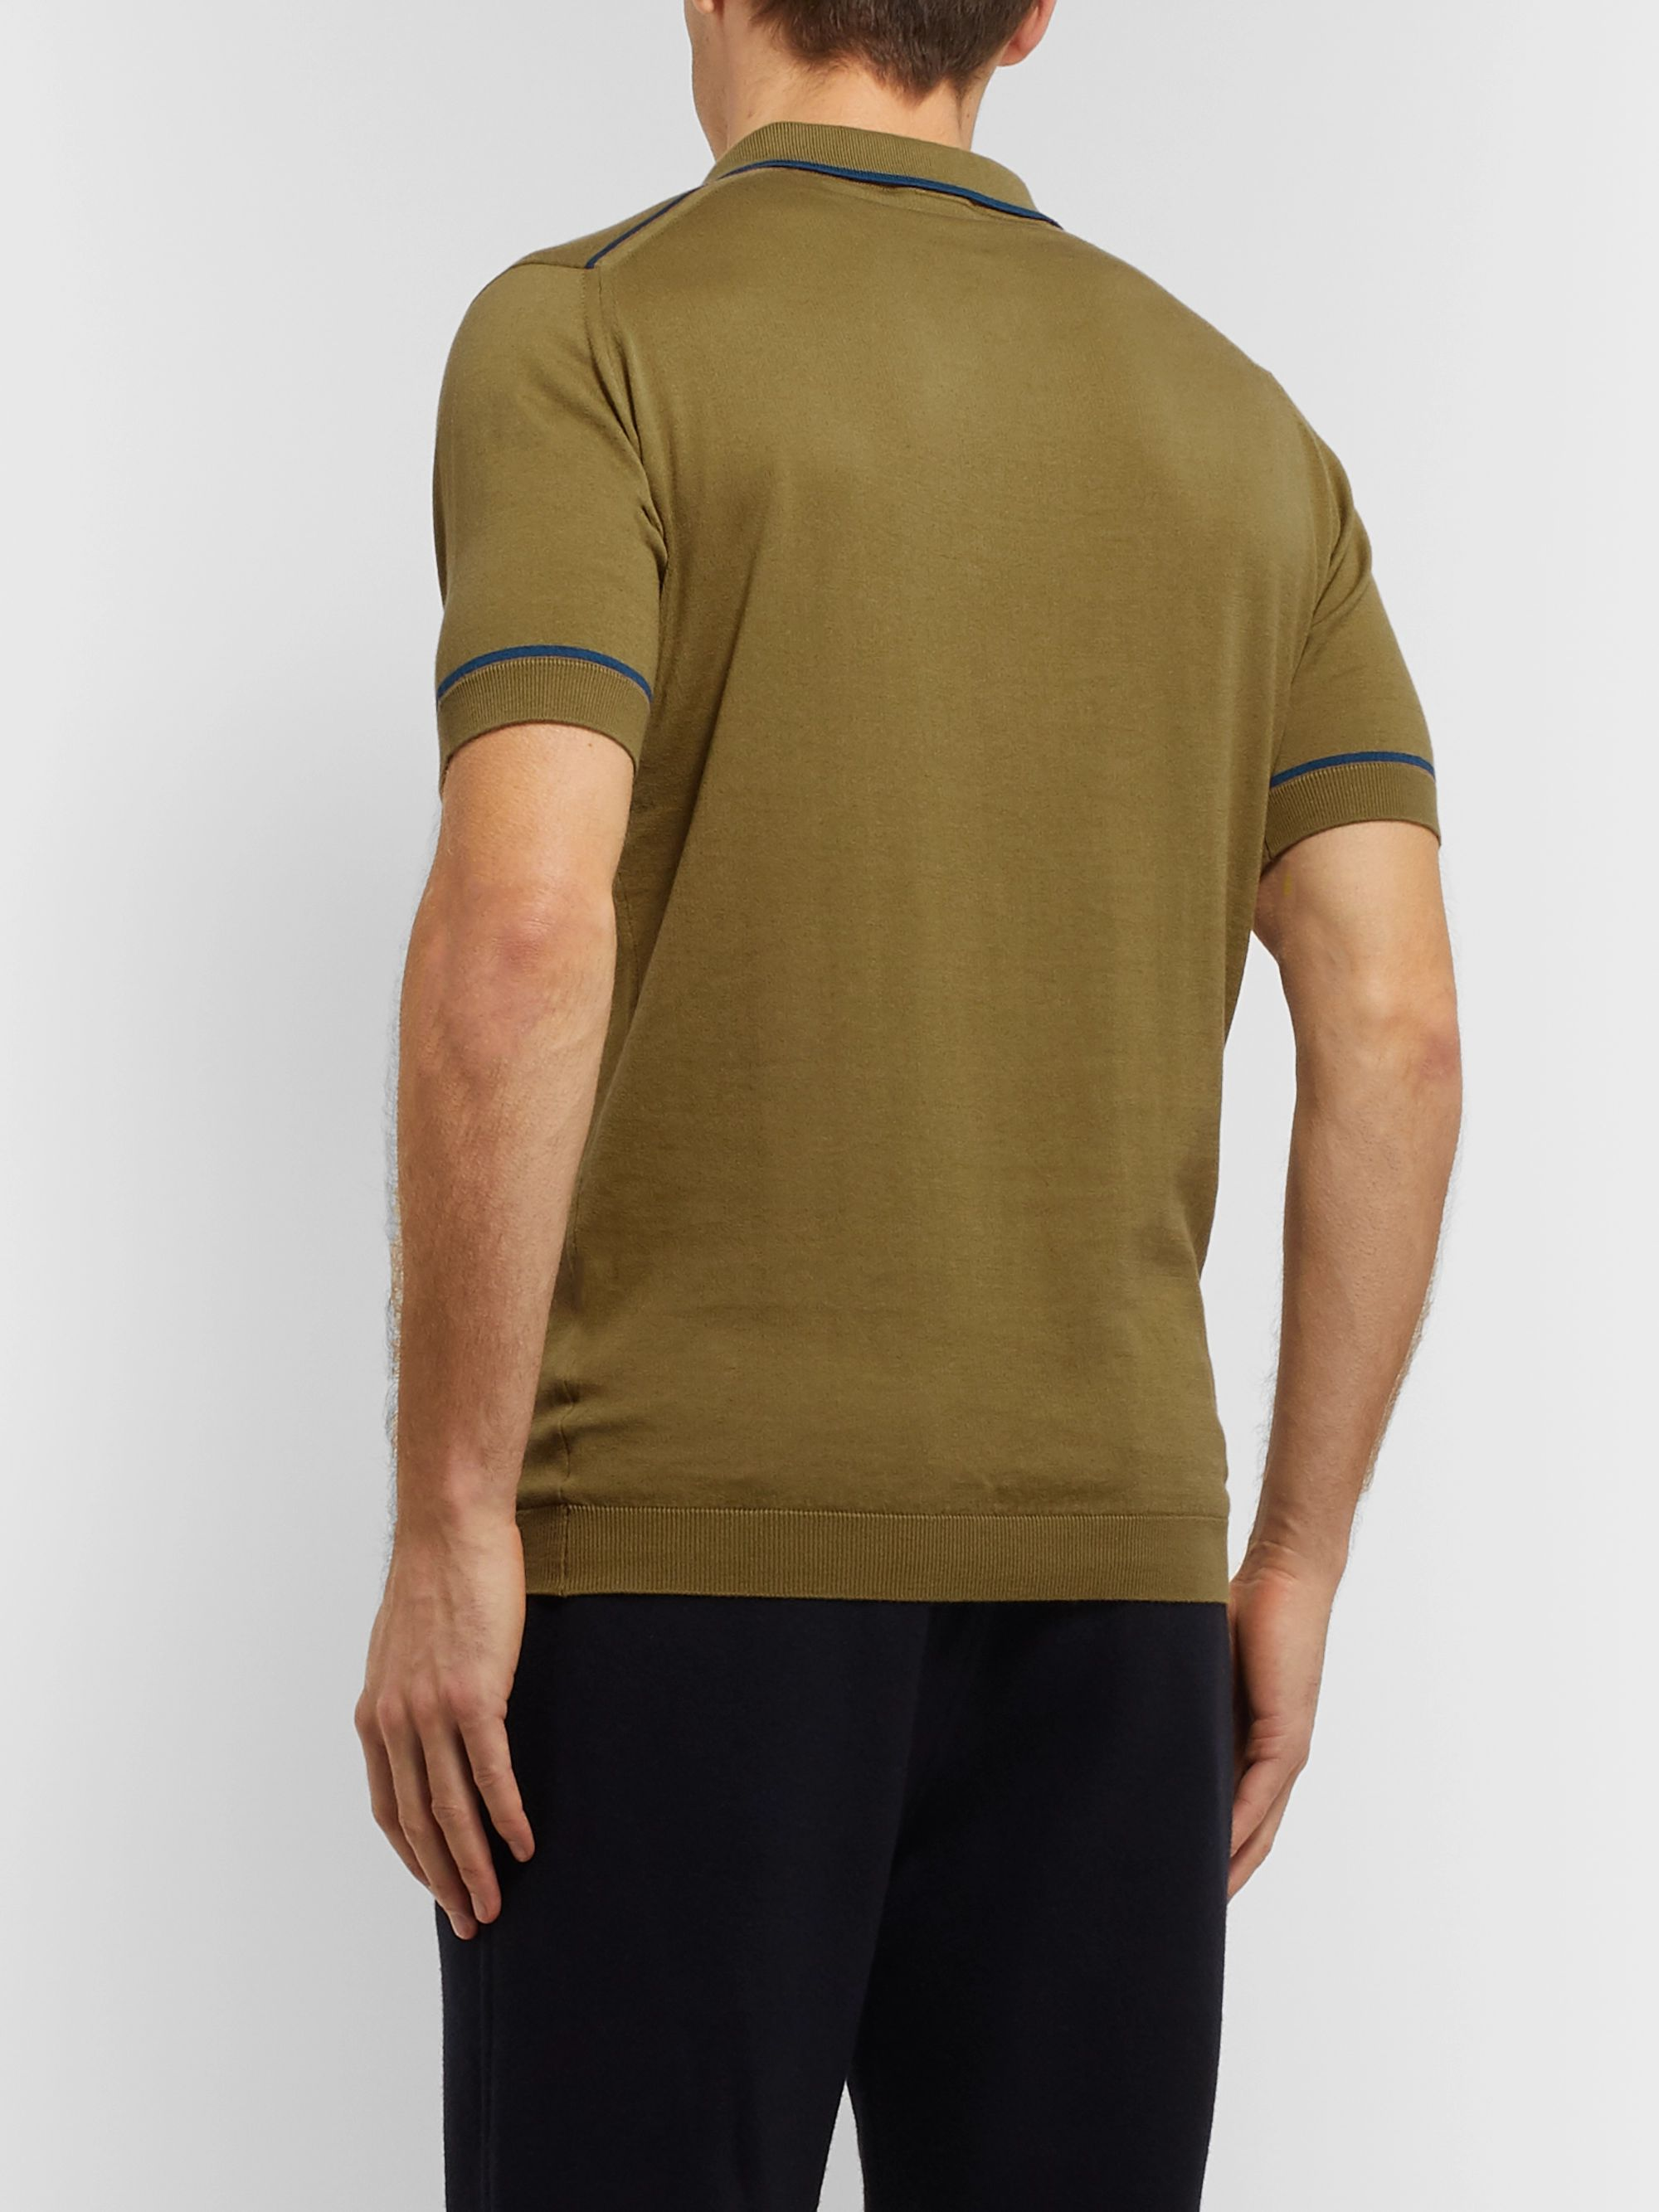 John Smedley Slim-Fit Contrast-Tipped Sea Island Cotton Polo Shirt